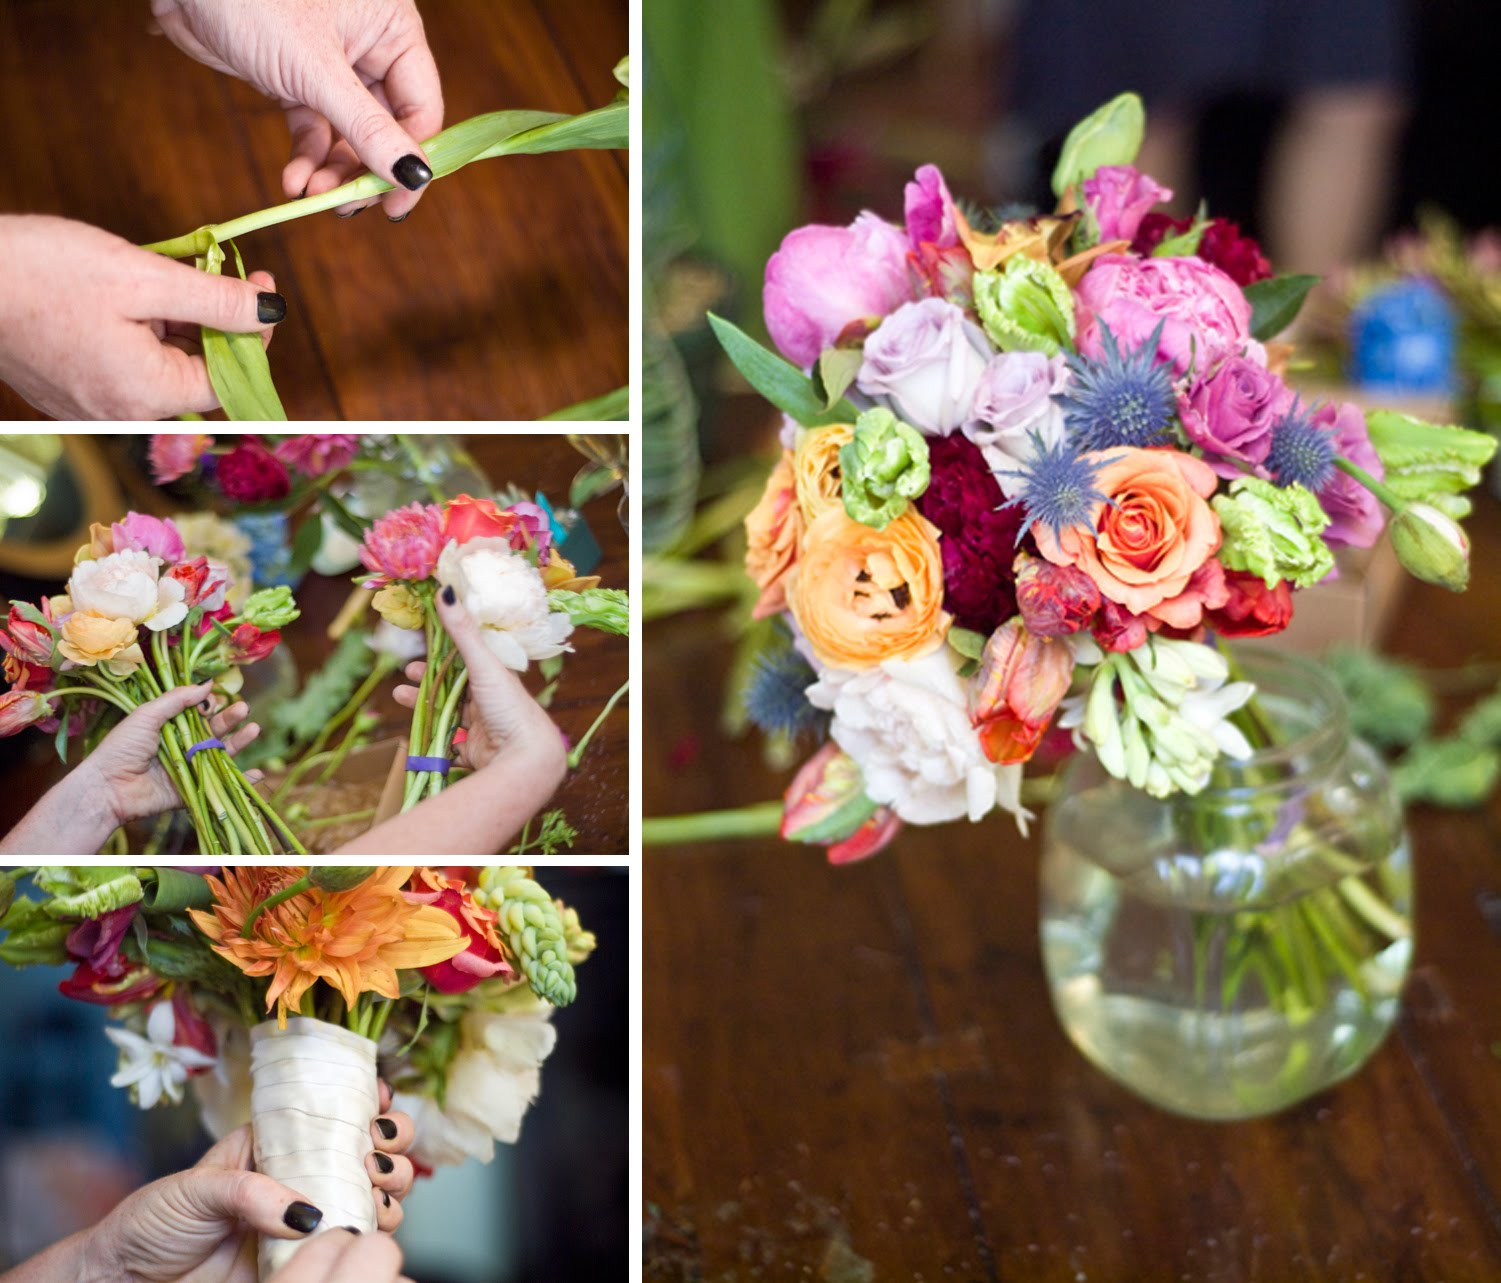 Diy Wedding Flower Bouquet: The Artful Bride Wedding Blog: DIY Bridal Bouquet